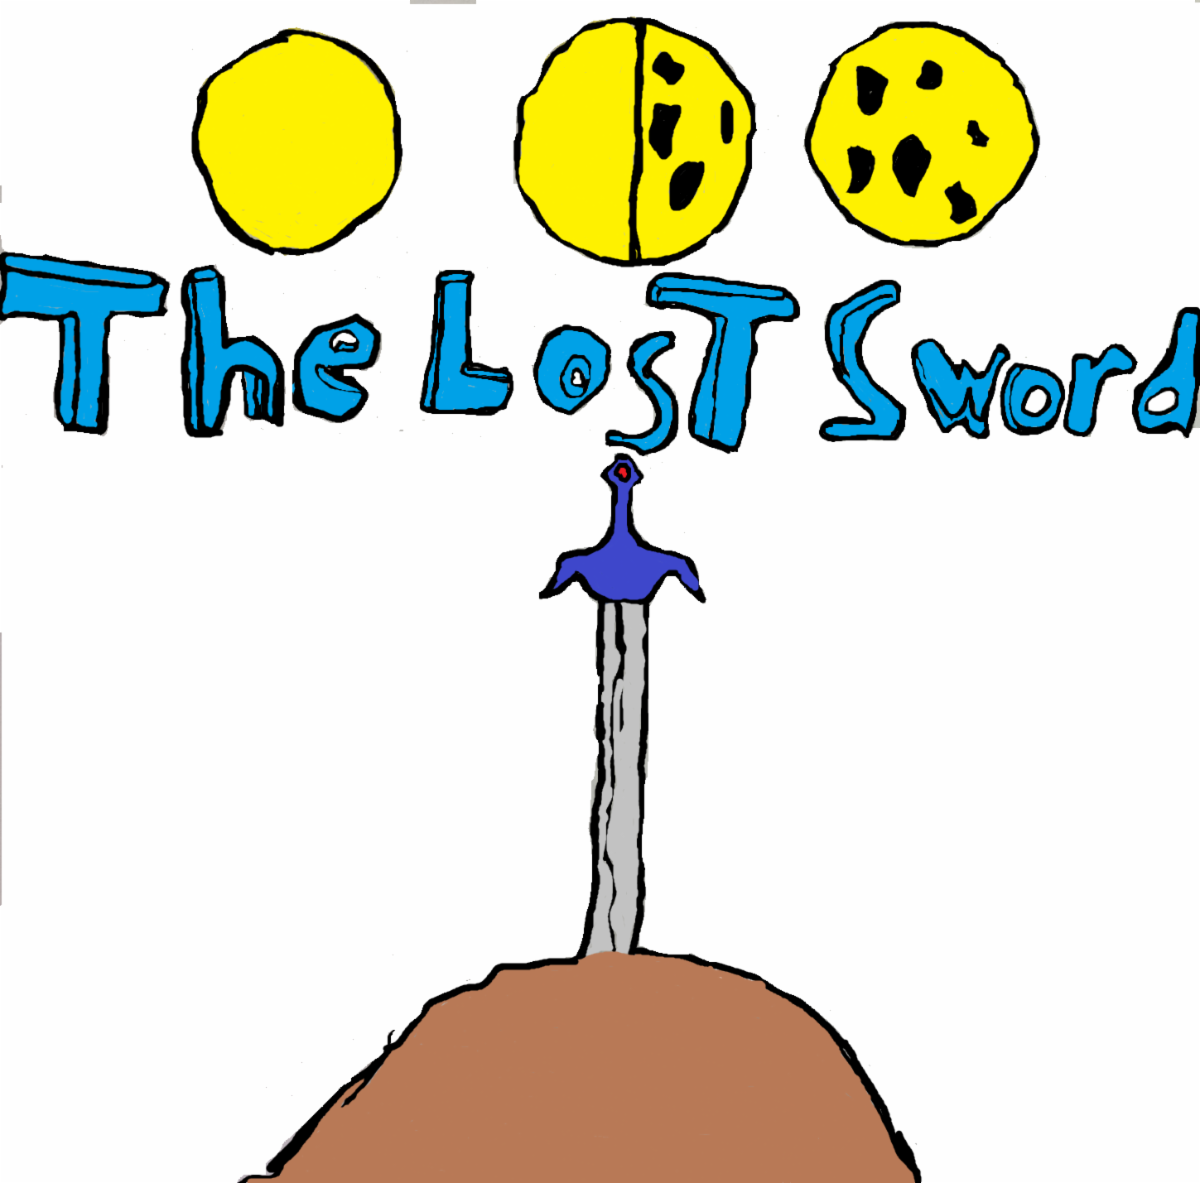 Cartoon drawing of sword in a stone